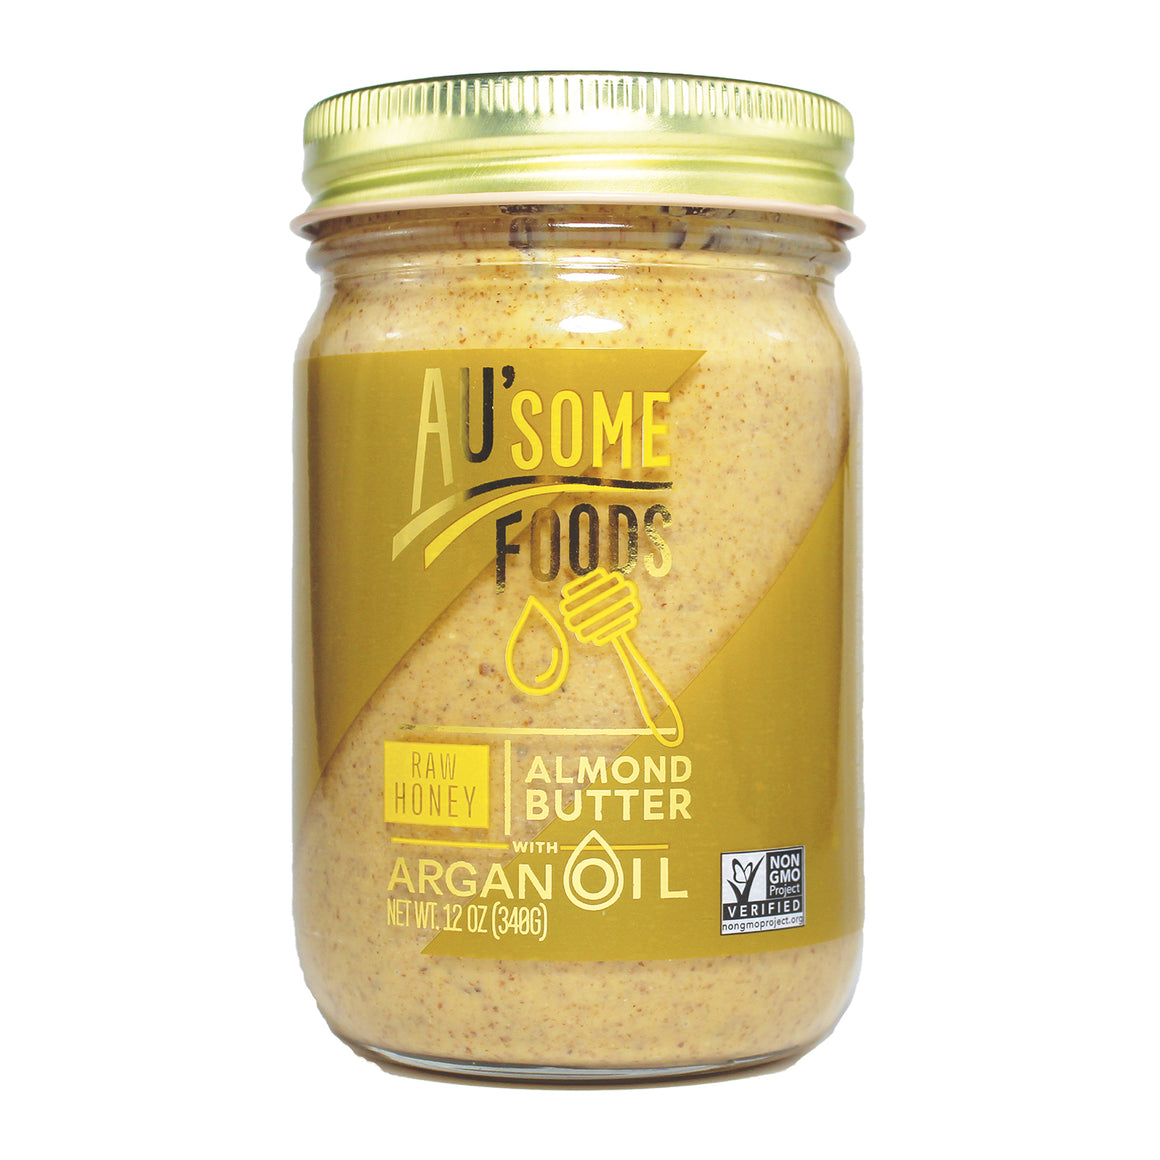 best almond butter. Au'some Foods almond butter with argan oil. raw honey. Au'some Foods